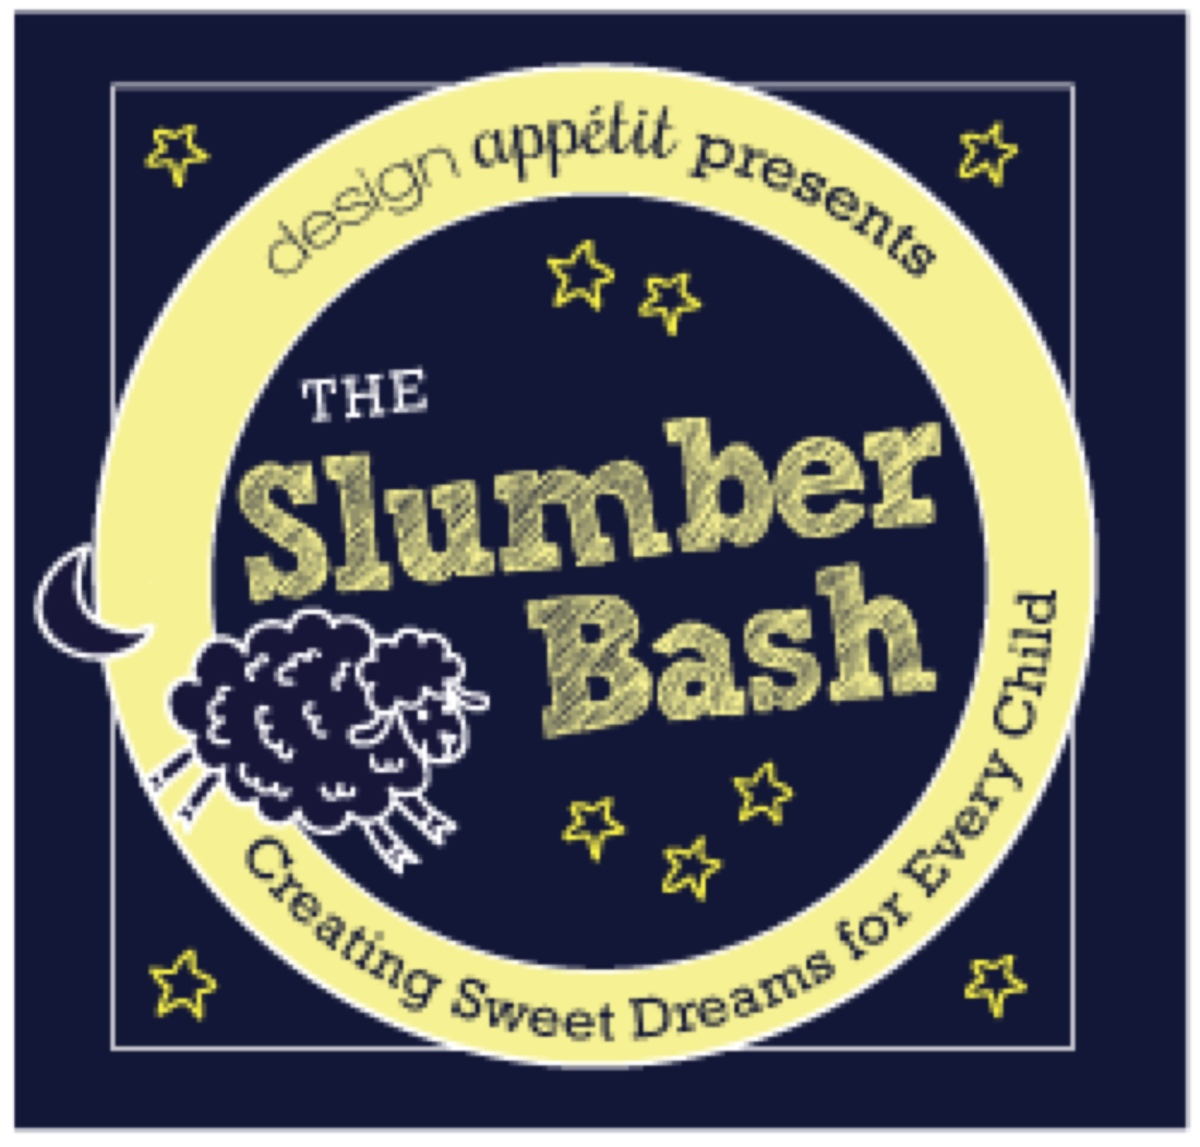 The Slumber Bash with the Oklahoma Kid where 50 deserving children who will each be gifted with their own new bed.